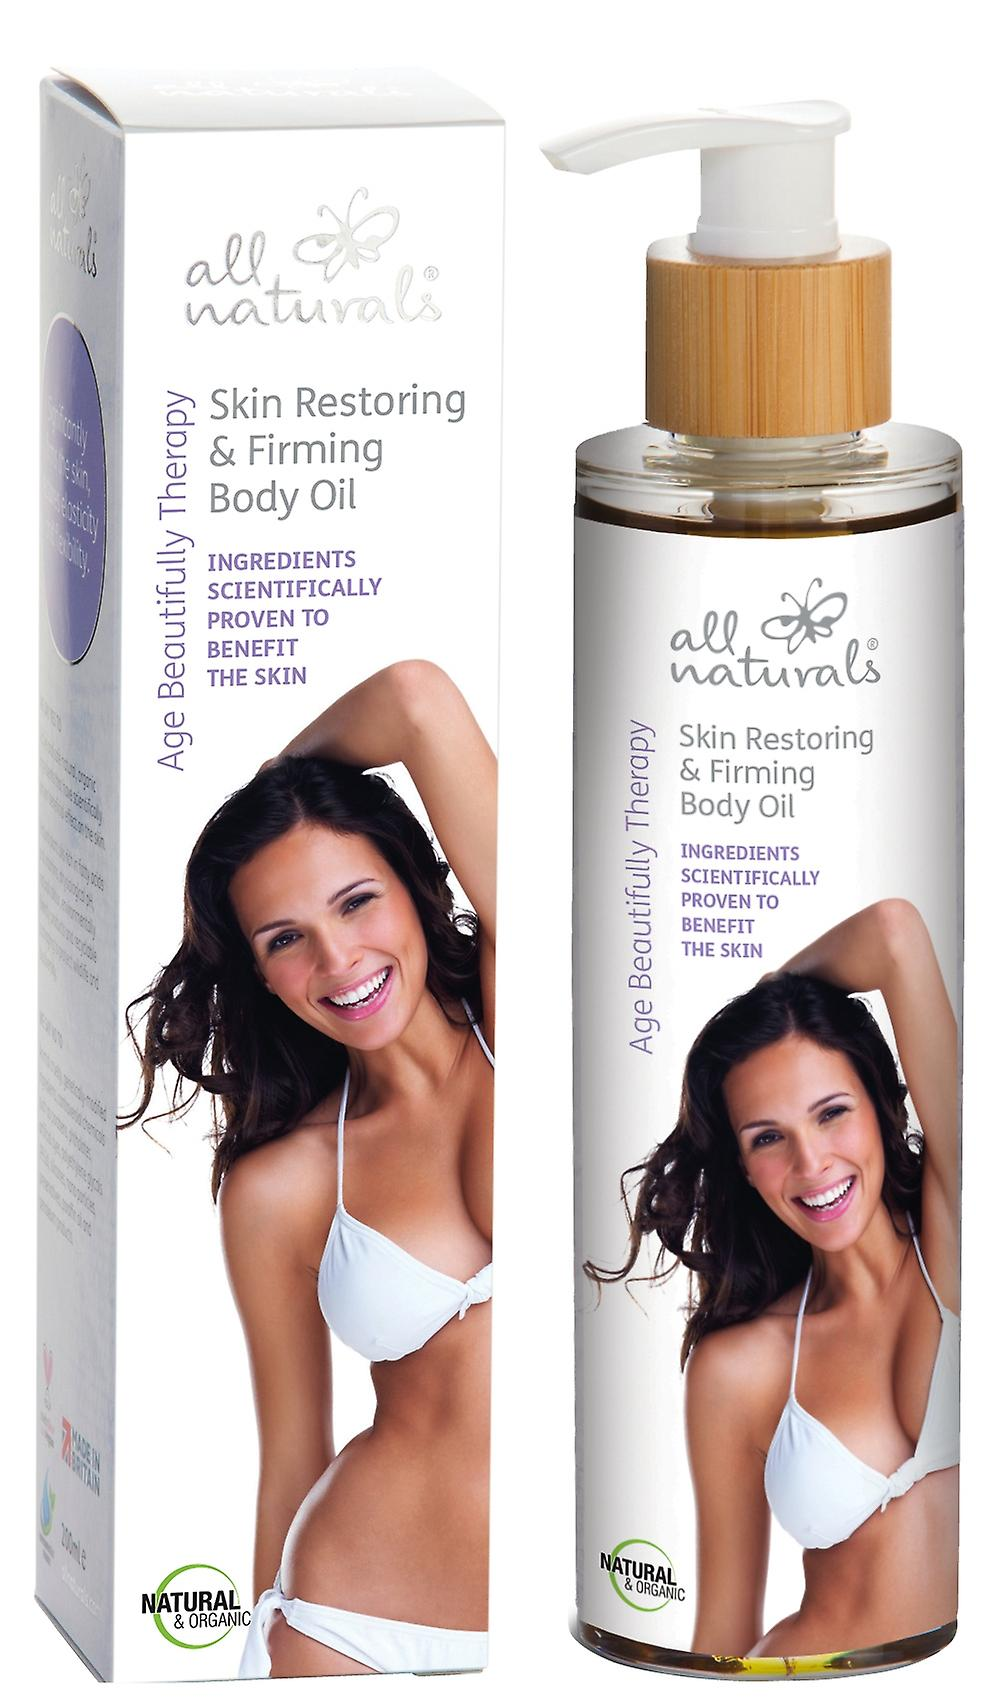 Organic Skin Restoring & Firming Body Oil. Age Beautifully Therapy. 200ml